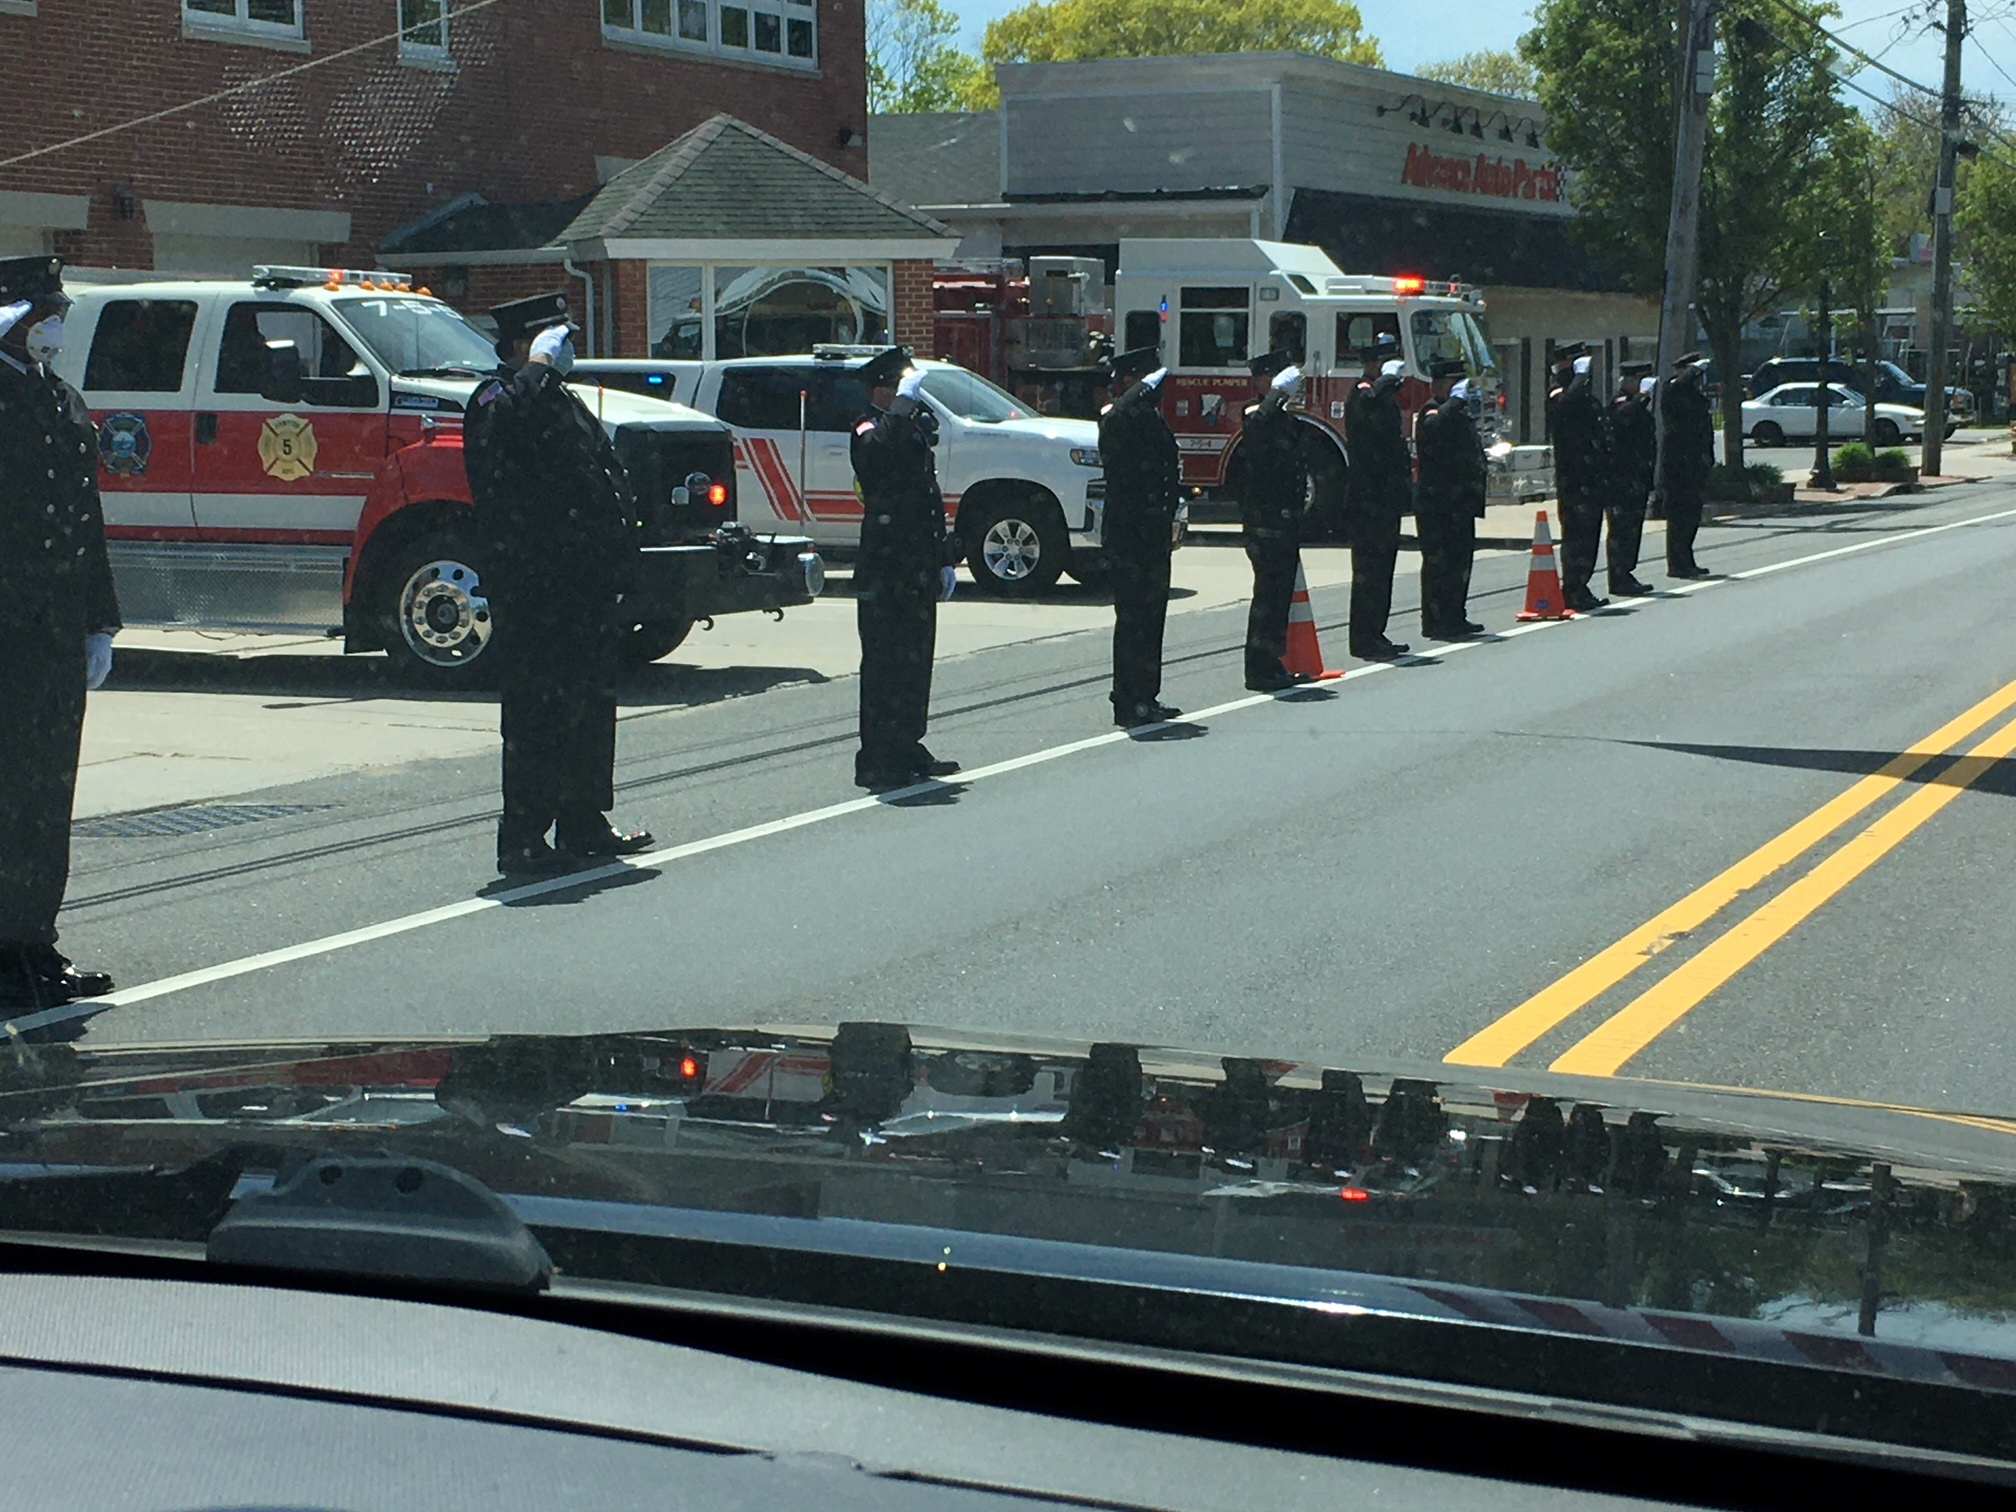 Firefighters saluted the funeral porcession as it passed. LORI SIDOR